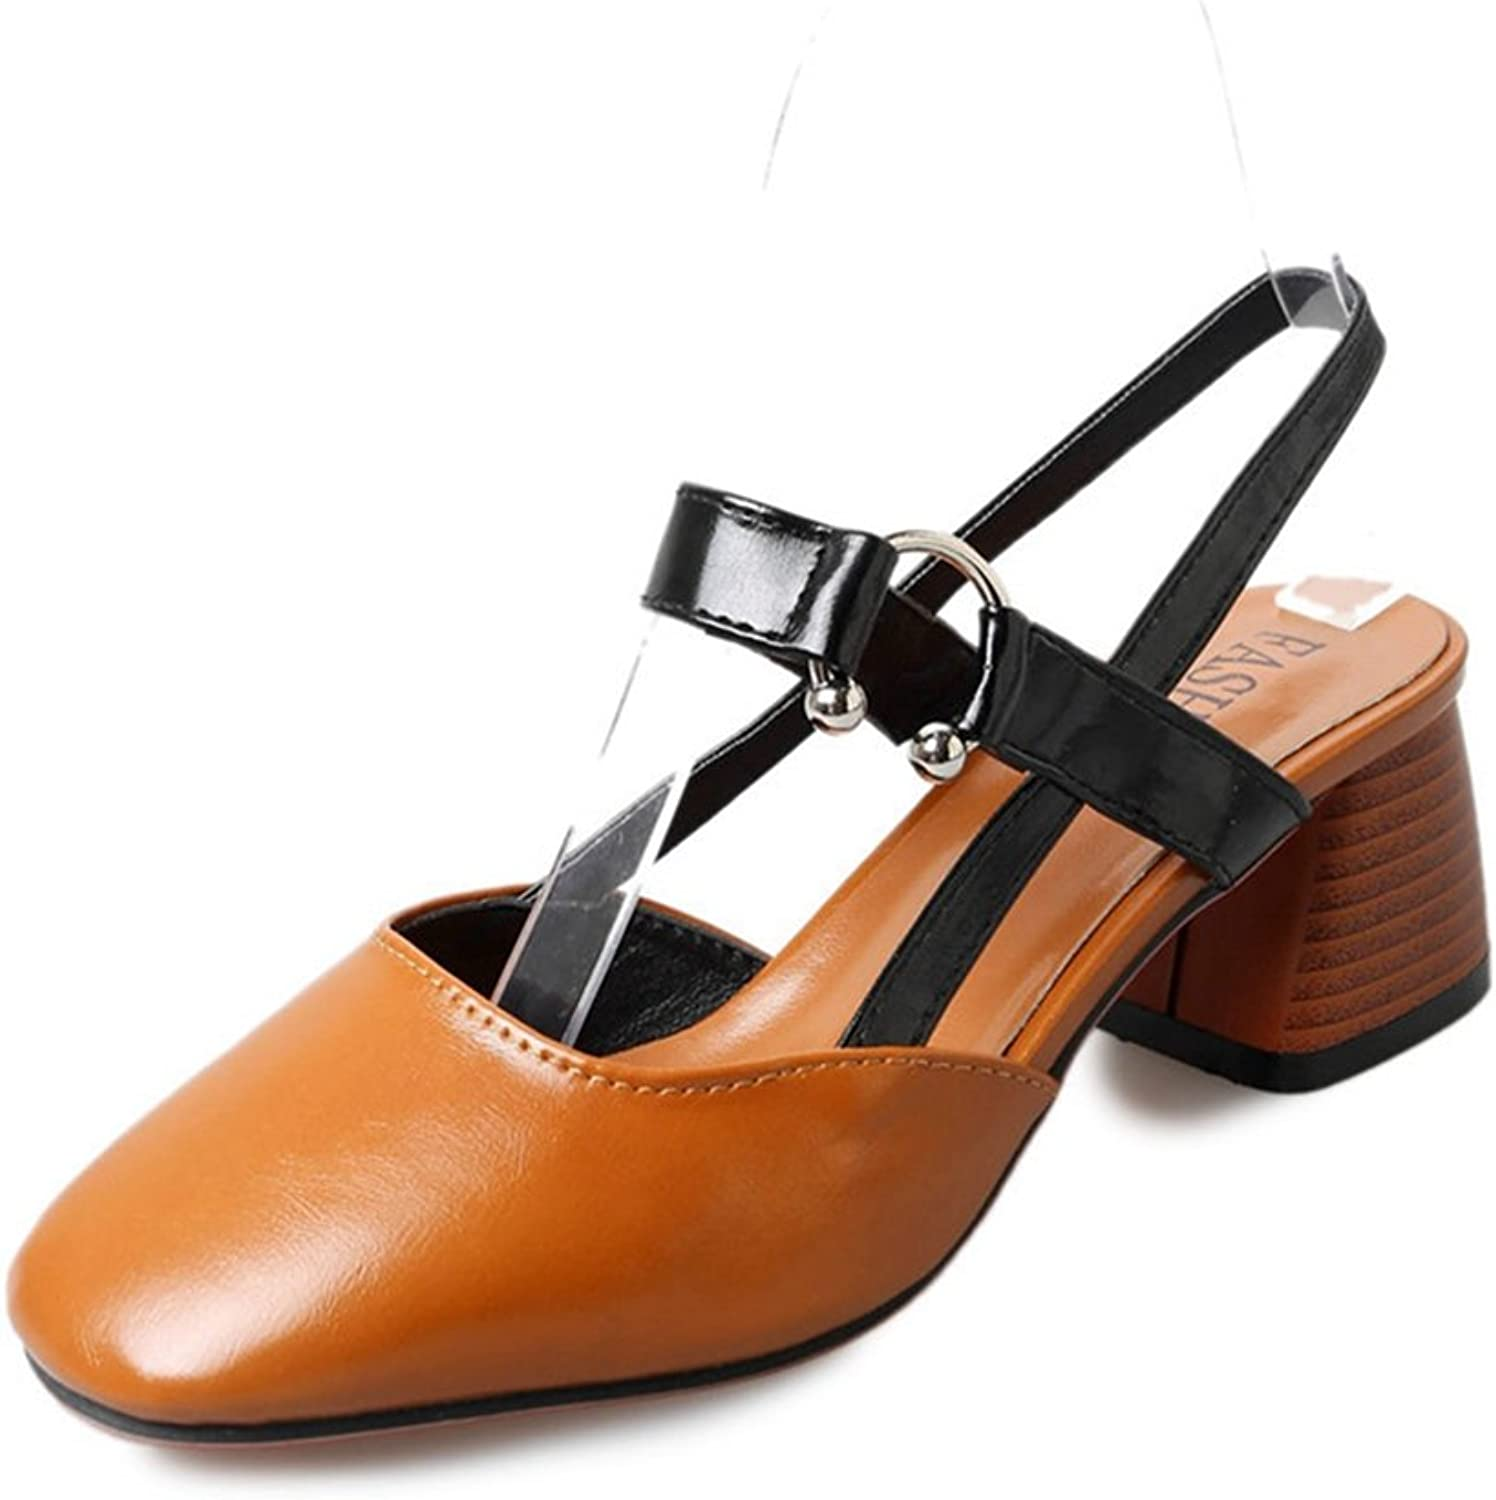 Zarbrina Womens Chunky Mid Heels Sandals Ladies Clogs Mules Square Toe Slingback Soft Ankle Strap shoes